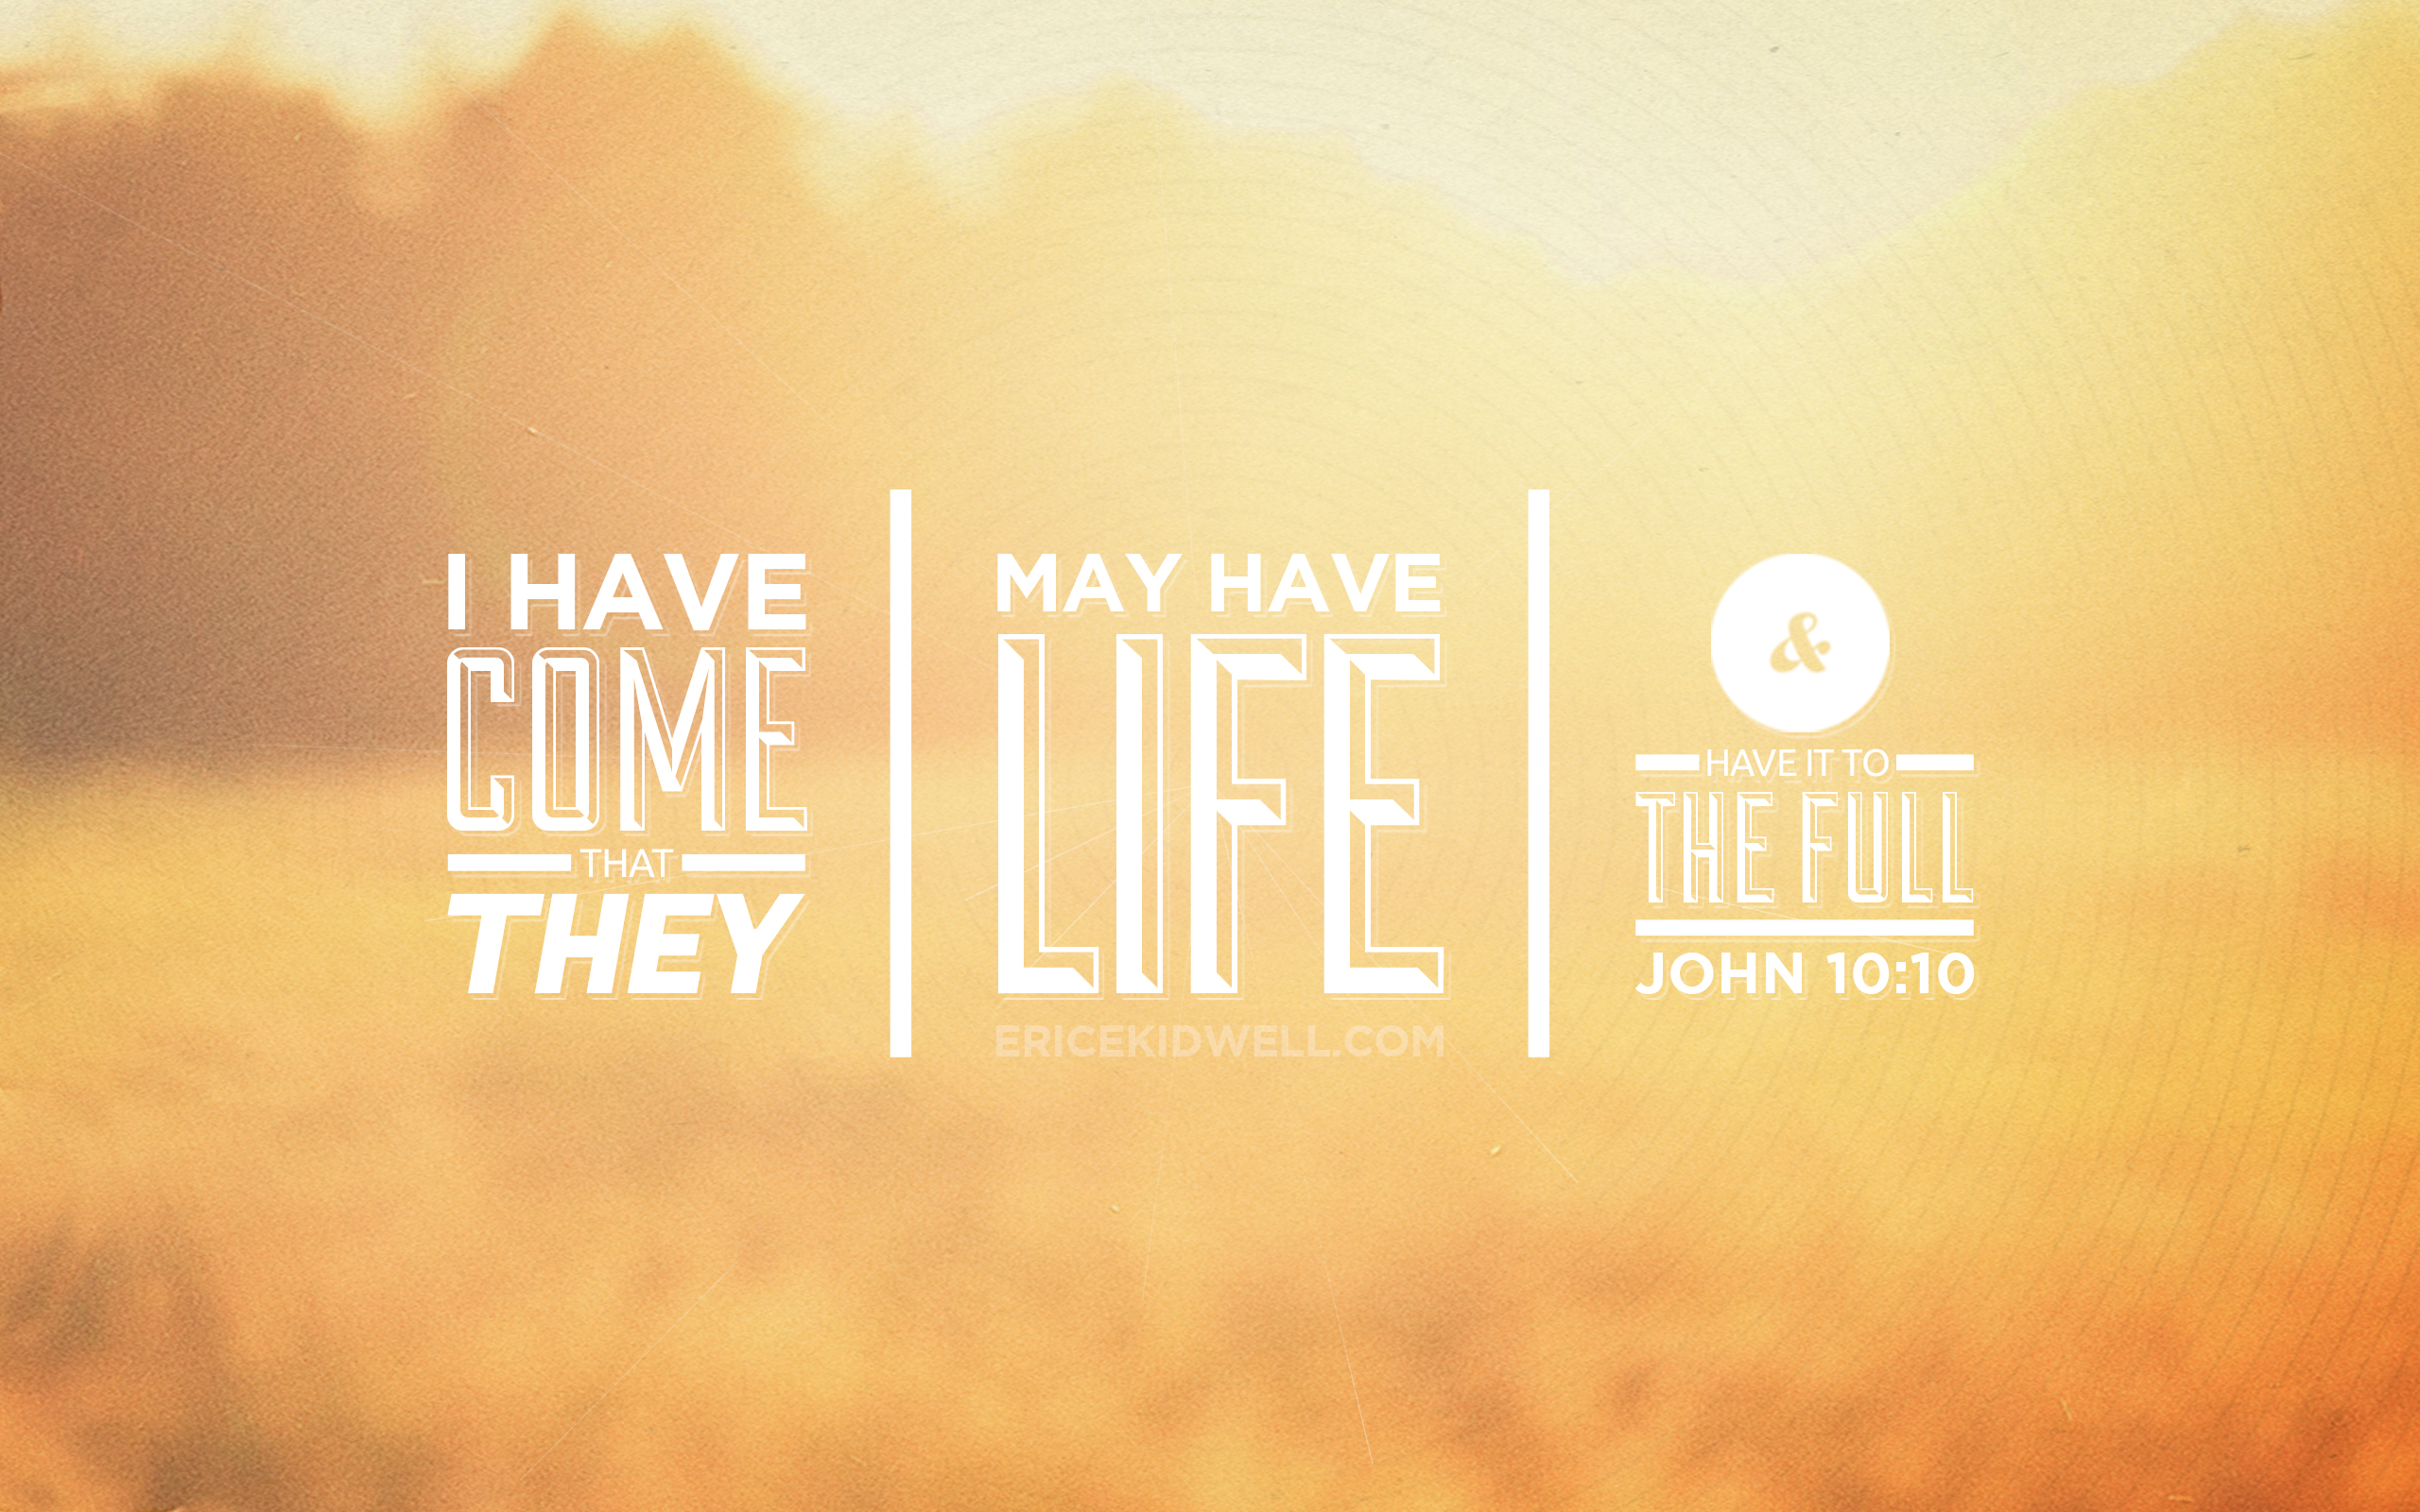 John 10:10 – FREE Download